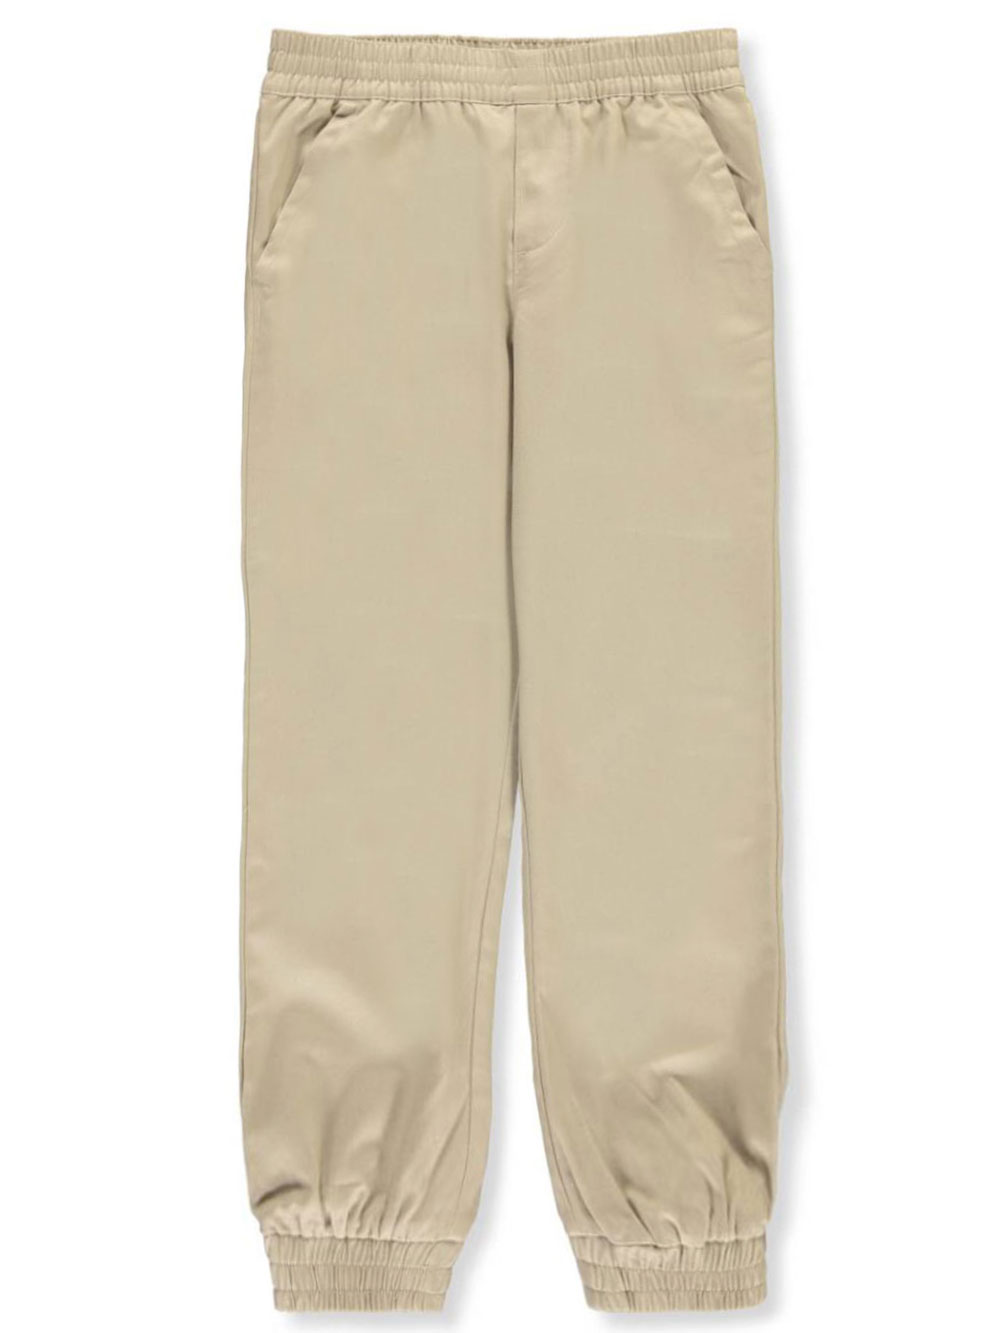 da2fdab7020fe8 Joggers Pants Kids - Best Style Pants Man And Woman